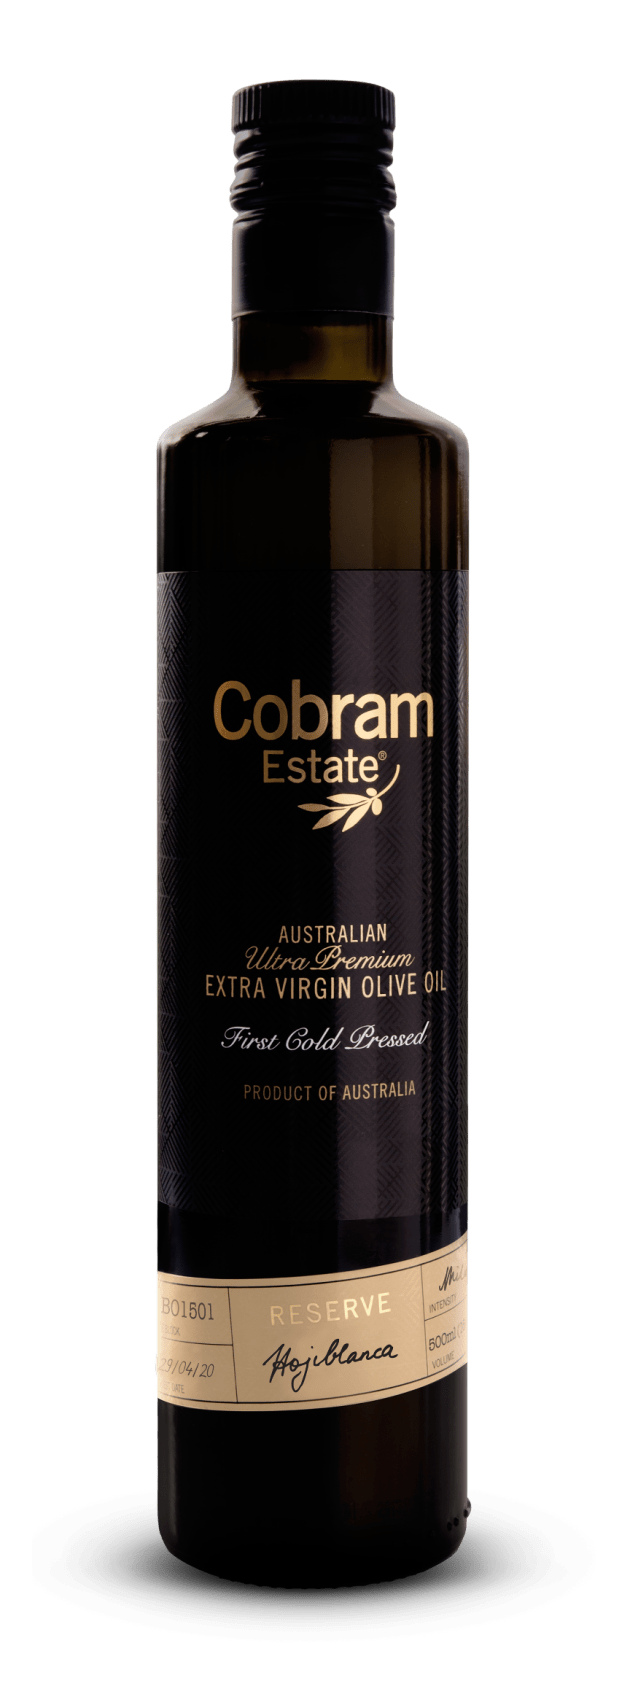 Cobram Estate's Black Label Hojiblanca Extra Virgin Olive Oil was awarded the best oil in the Southern Hemisphere by the International Olive Council at the Mario Solinas 2020 awards.